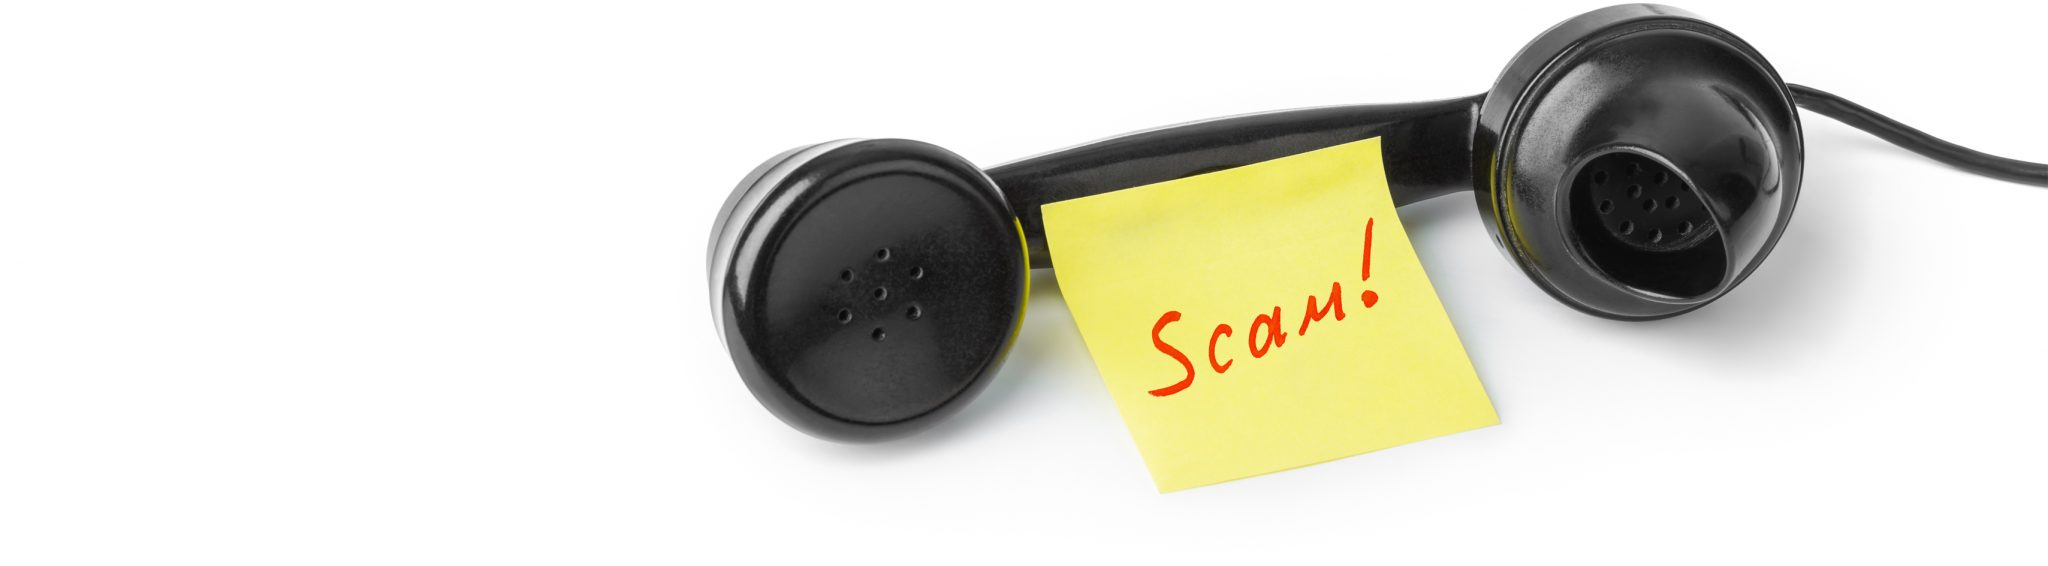 Scam calls: Apple and Google are mobilizing to end this scourge